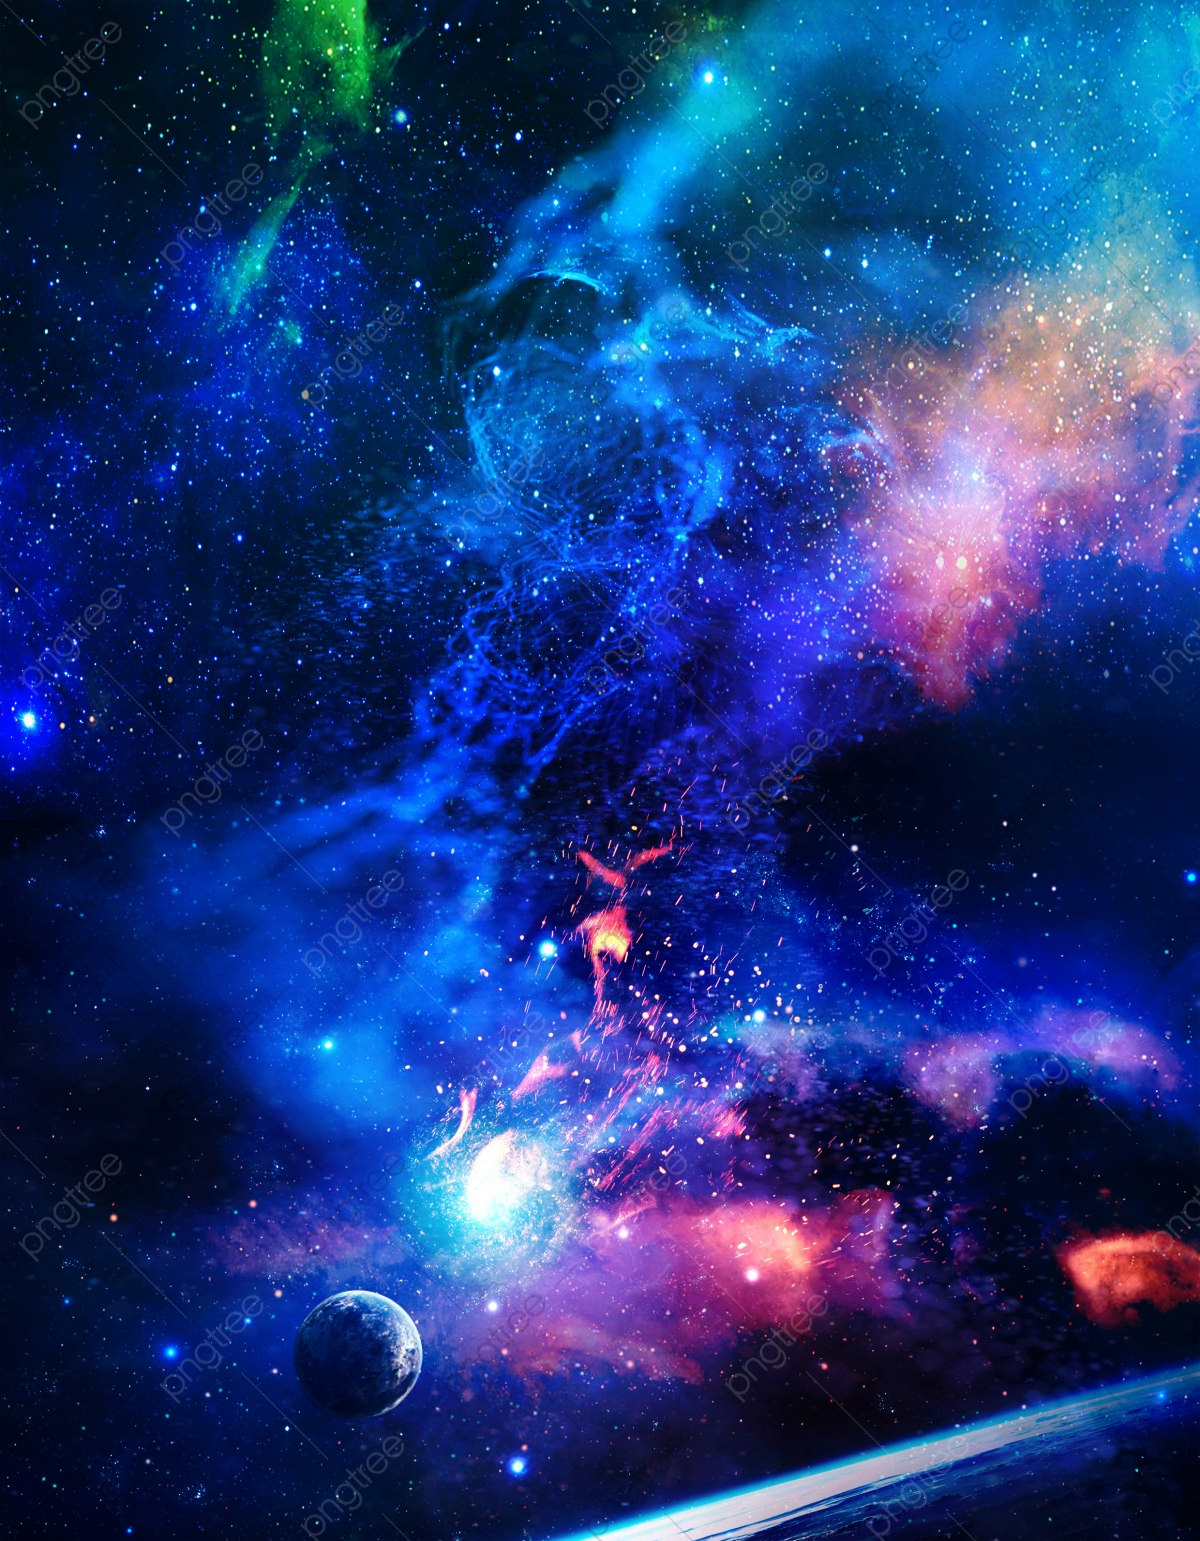 Cosmic Star Wars Background Material The Background Of Sense Of Science And Technology Background Material Science Fiction Background Image For Free Download